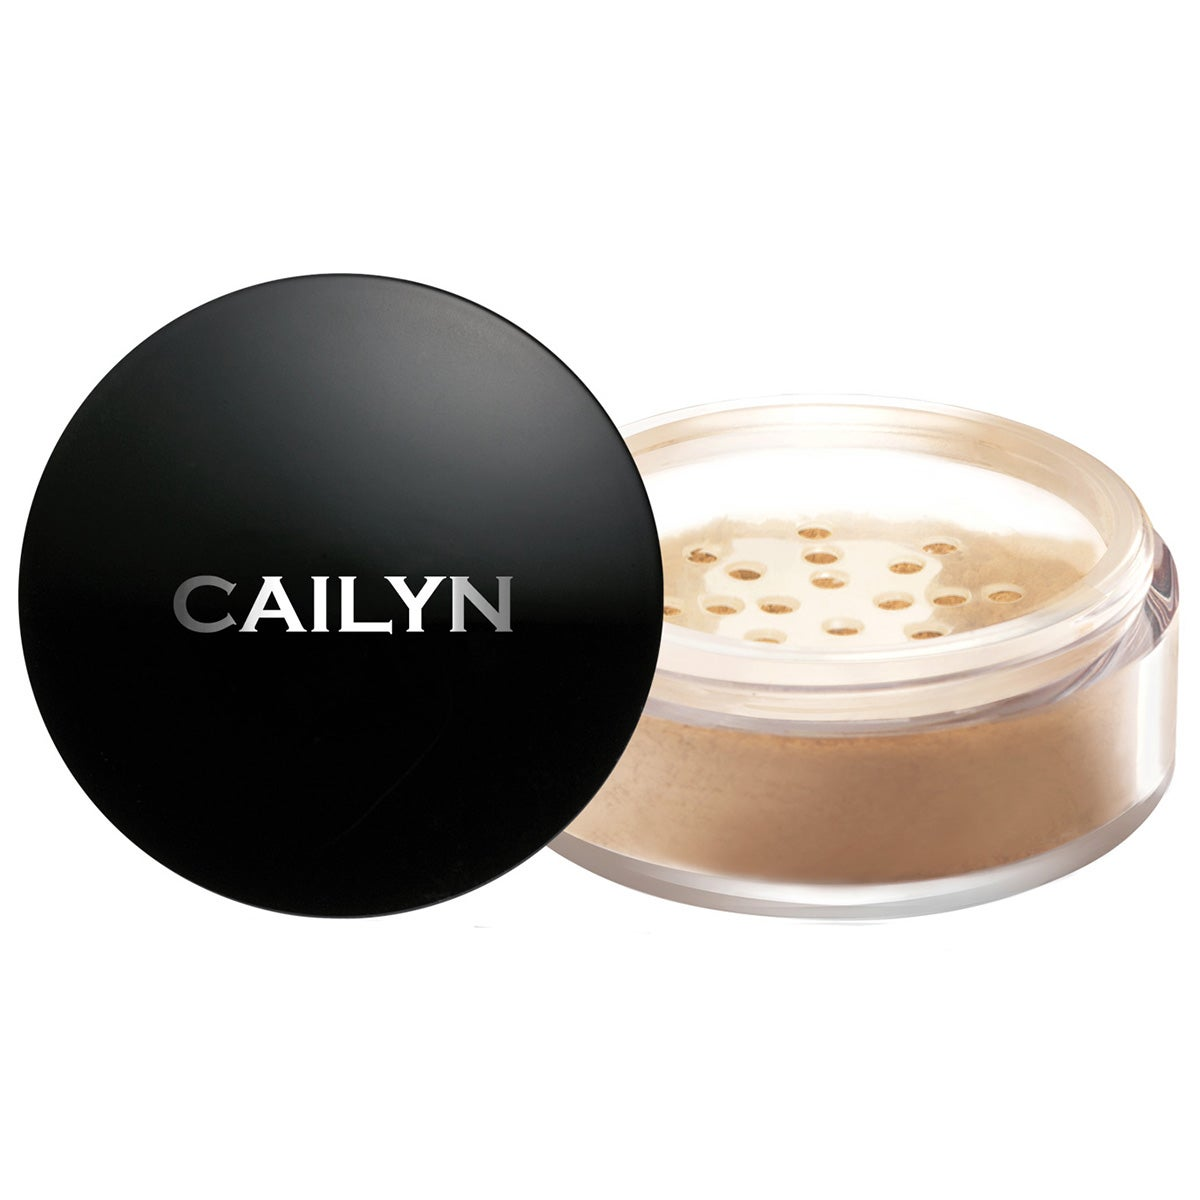 Cailyn Cosmetics Cailyn Deluxe Mineral Foundation Powder